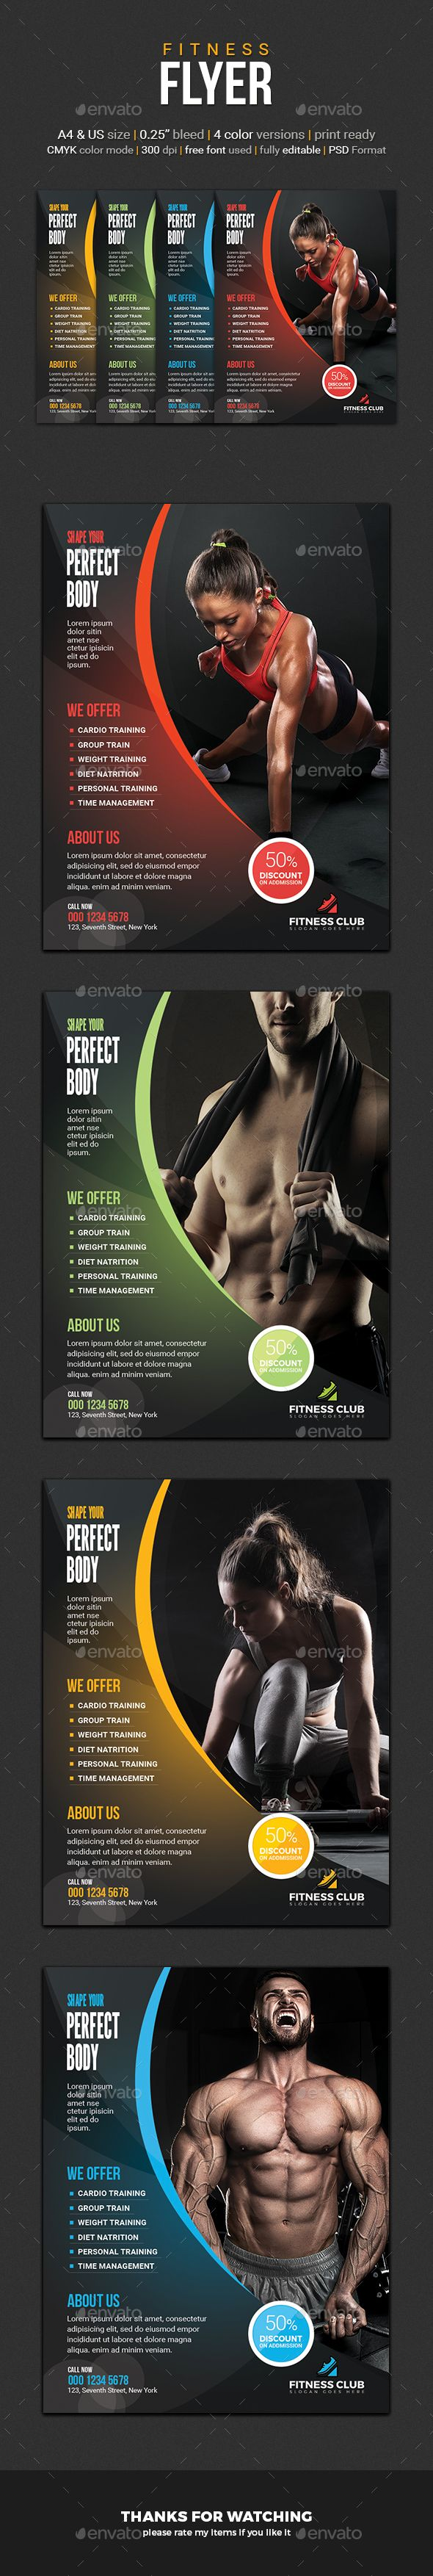 Fitness Flyer by Diverter This Fitness Flyer Template is a great tool for promoting your Fitness & Gym, beauty center consultancy activity and sports clubs.